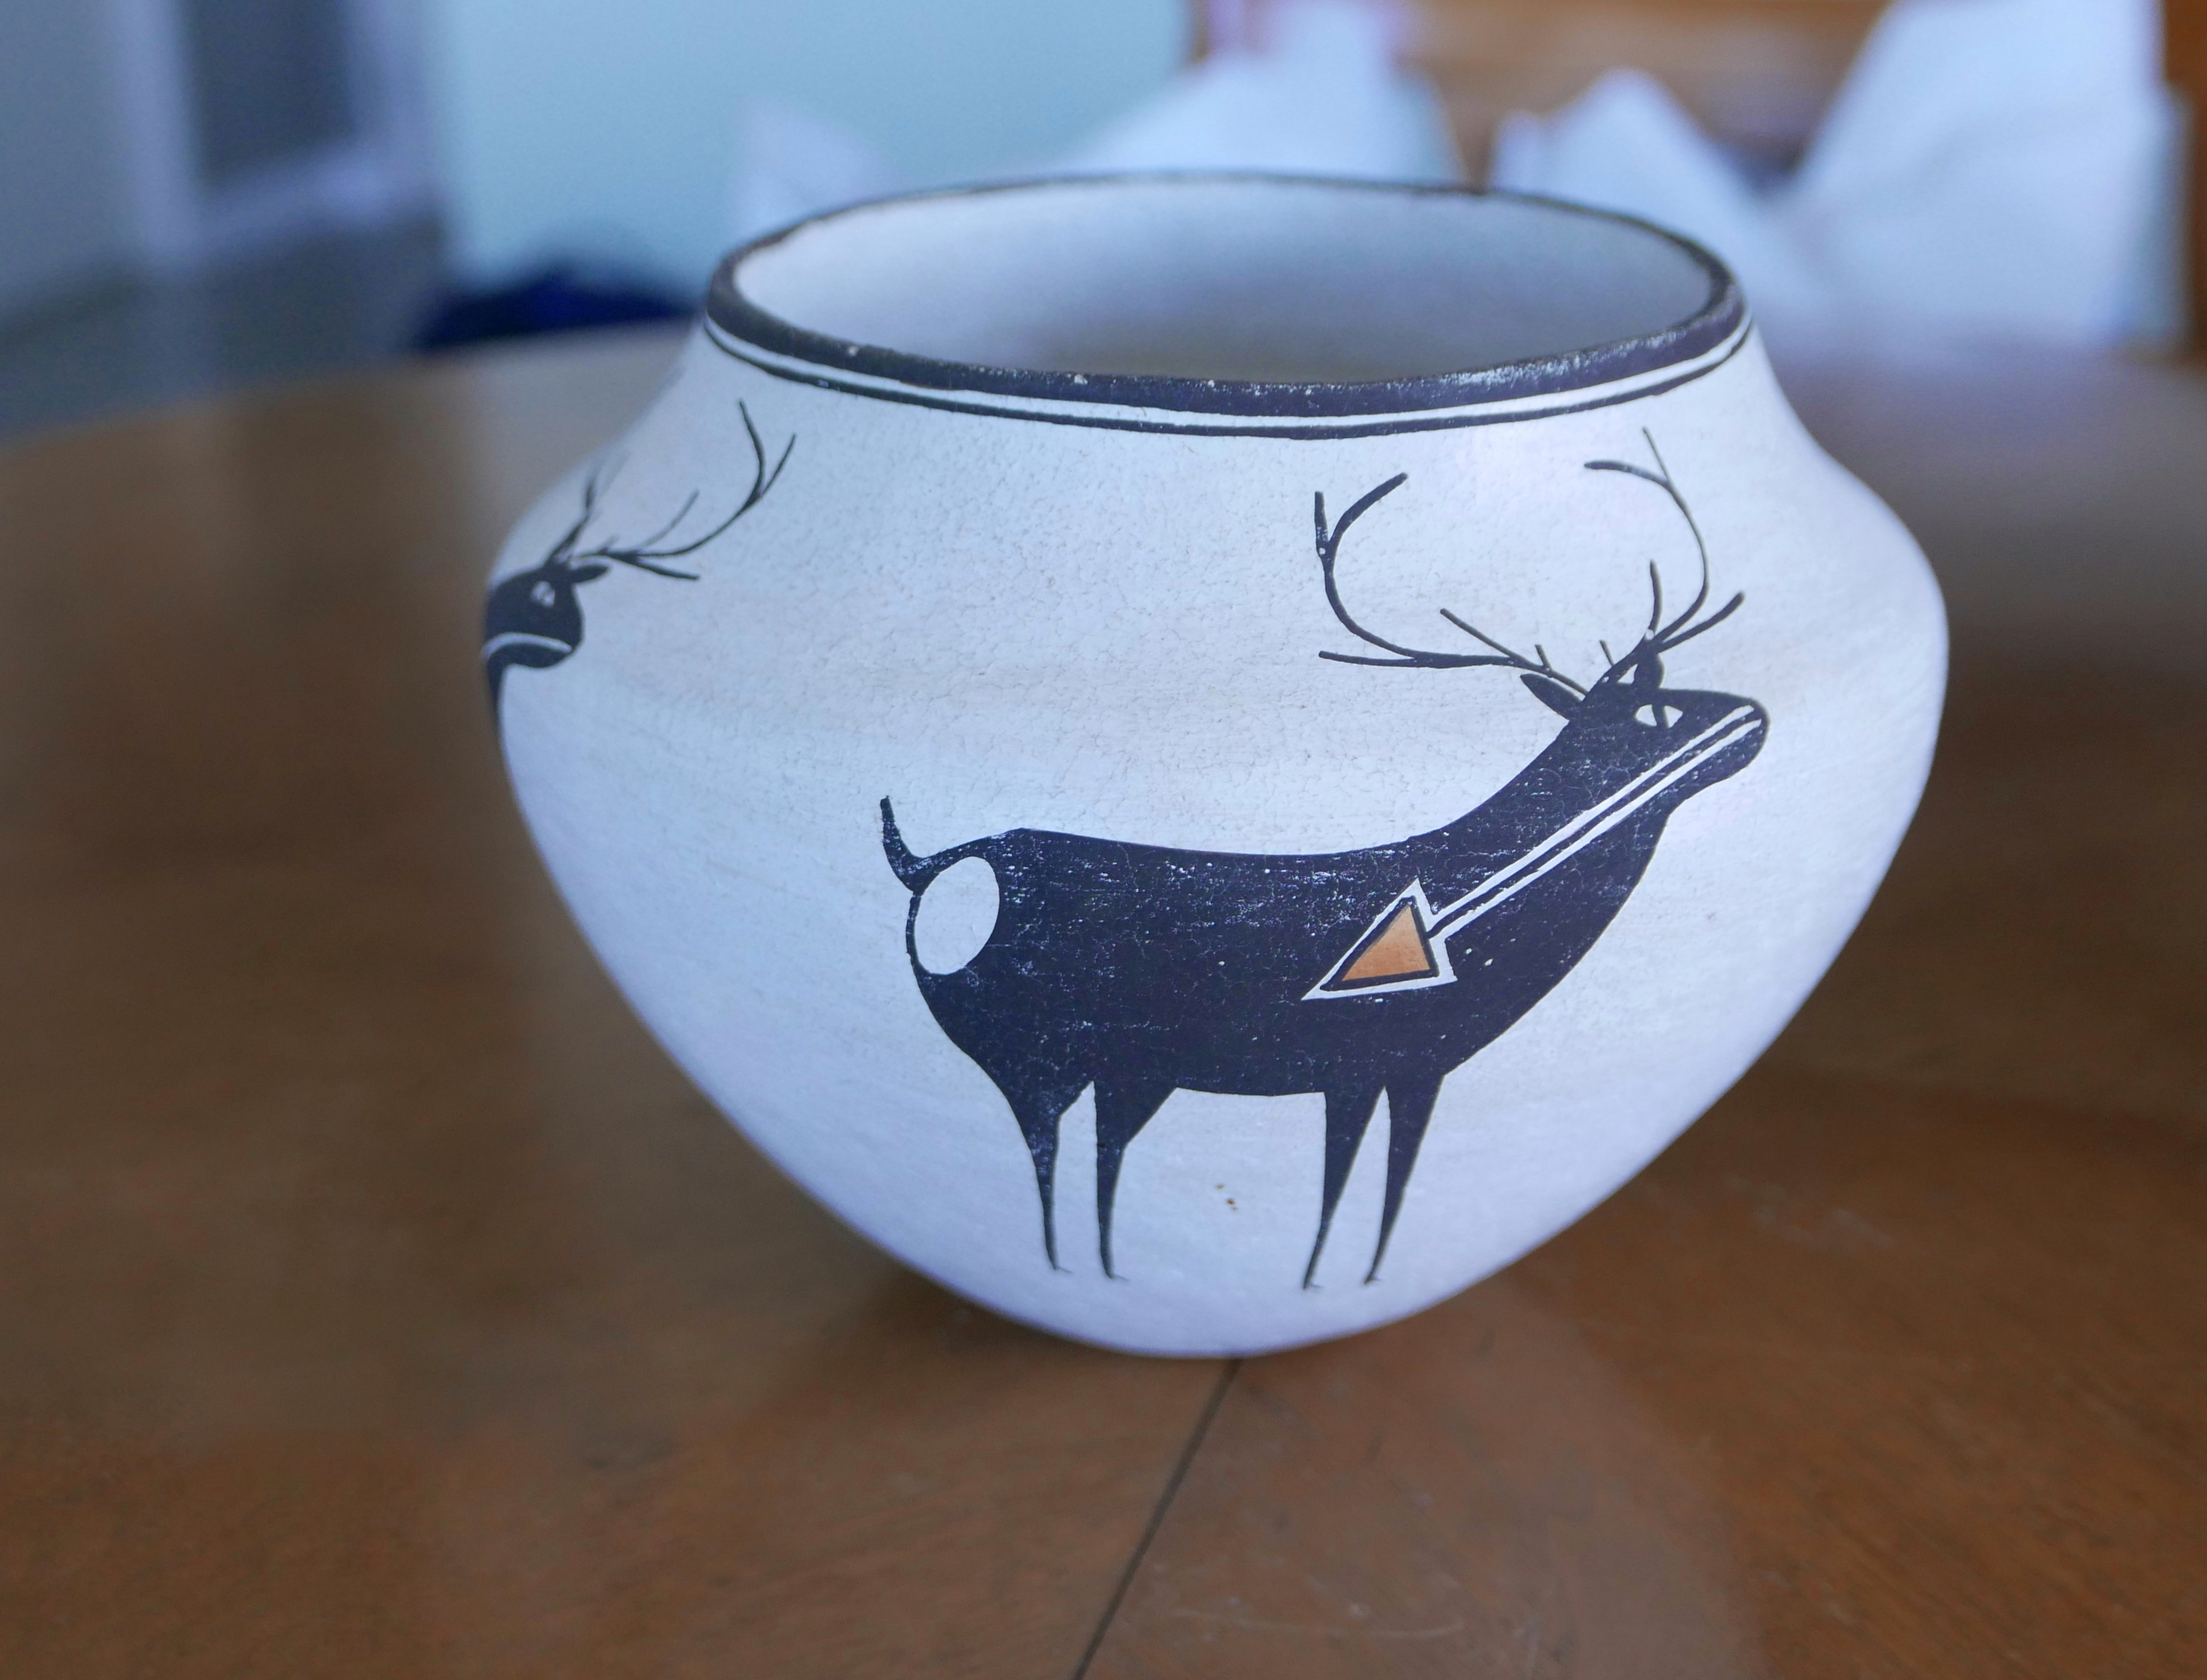 Decorated vessel with animal design